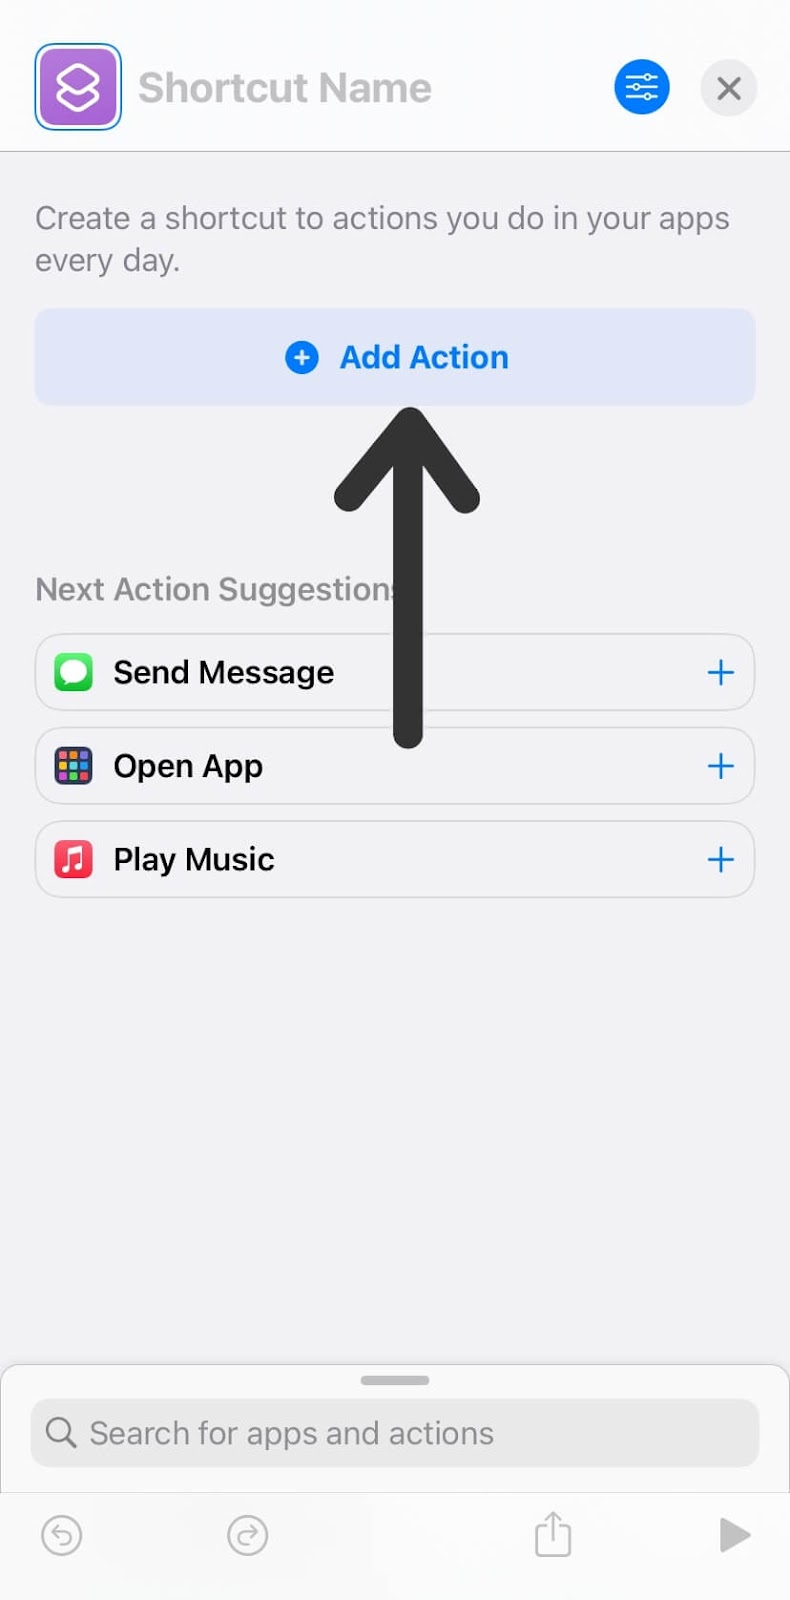 Click Add Action on iPhone Shortcuts app